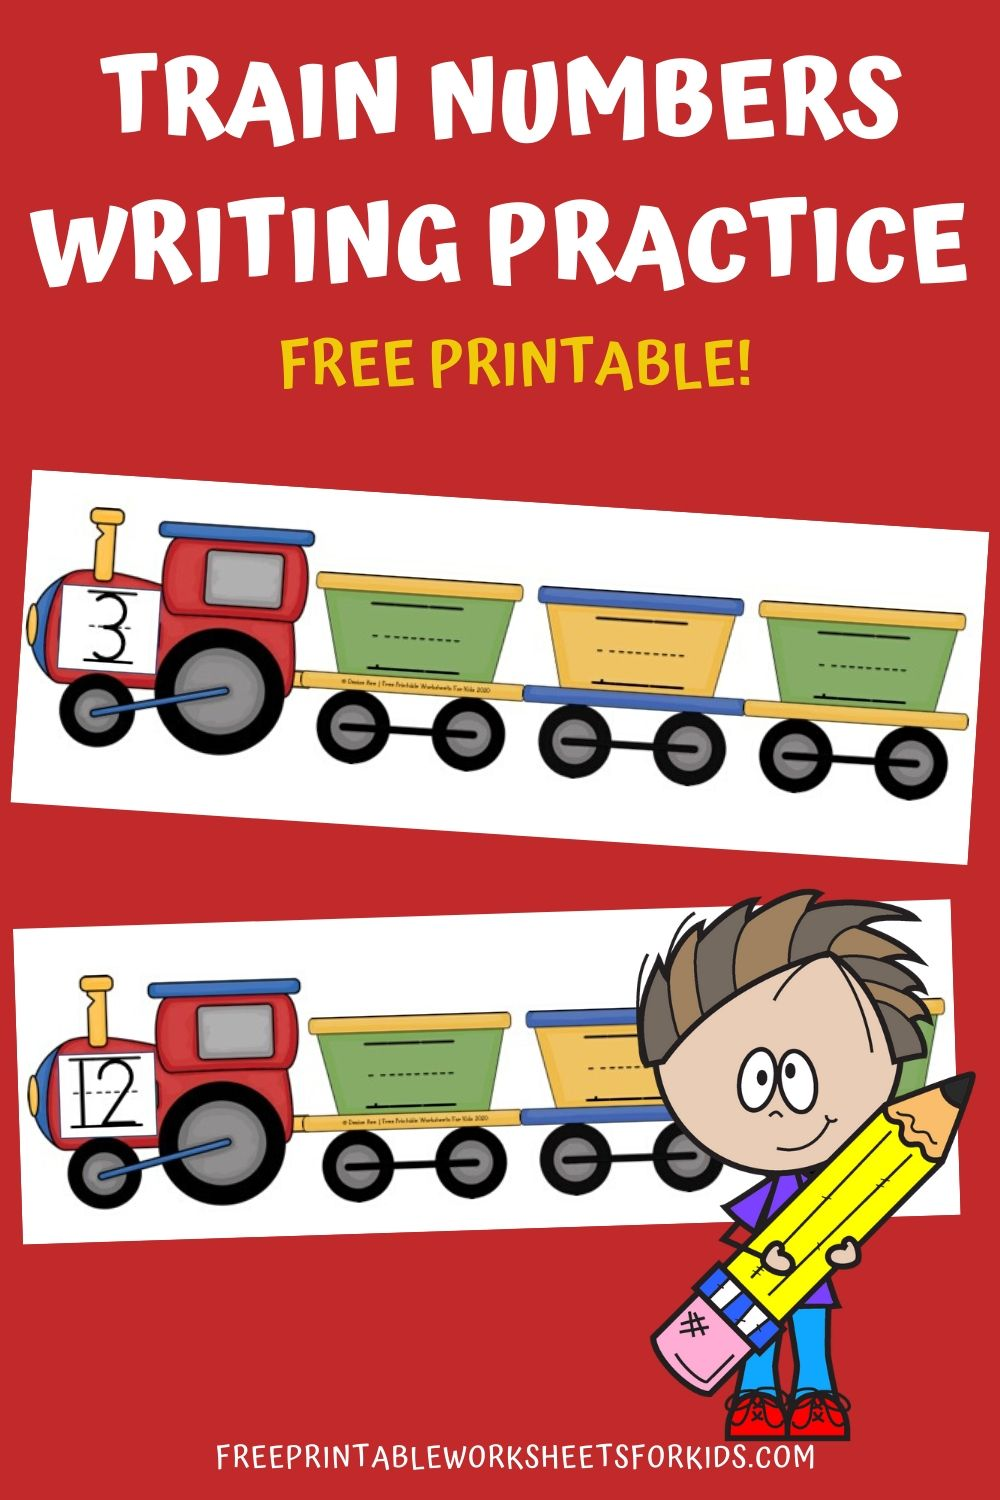 Fun Transportation Printables for Preschool and Kindergarten   Train Themed Number Writing Games   Hands On Math Homeschool Activities   Kids Classroom Center Ideas and Worksheets #FreePrintableWorksheetsForKids #train #transportation #number #writing